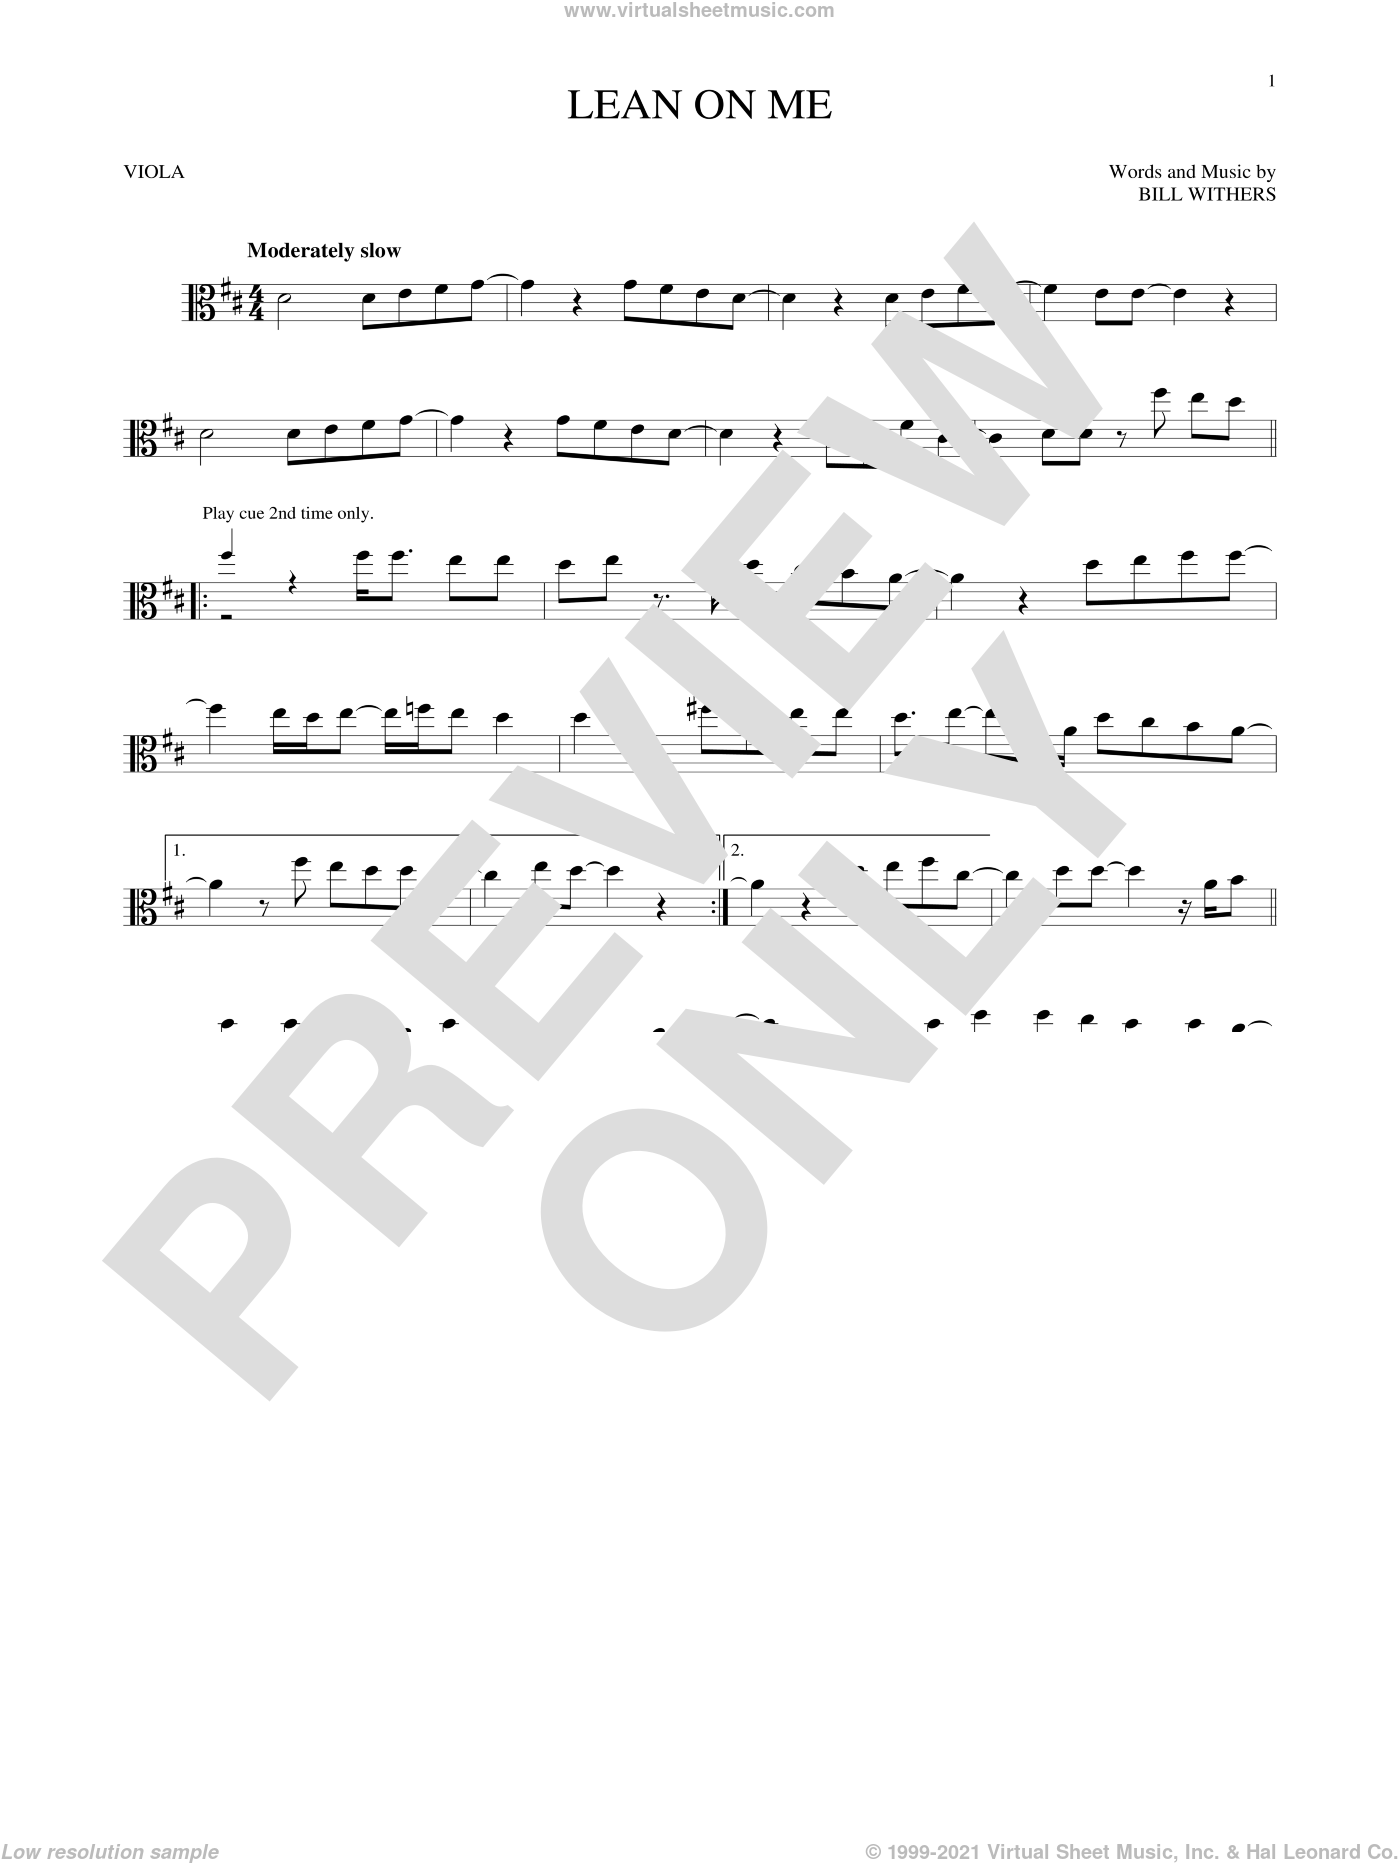 Lean On Me sheet music for viola solo by Bill Withers, intermediate skill level